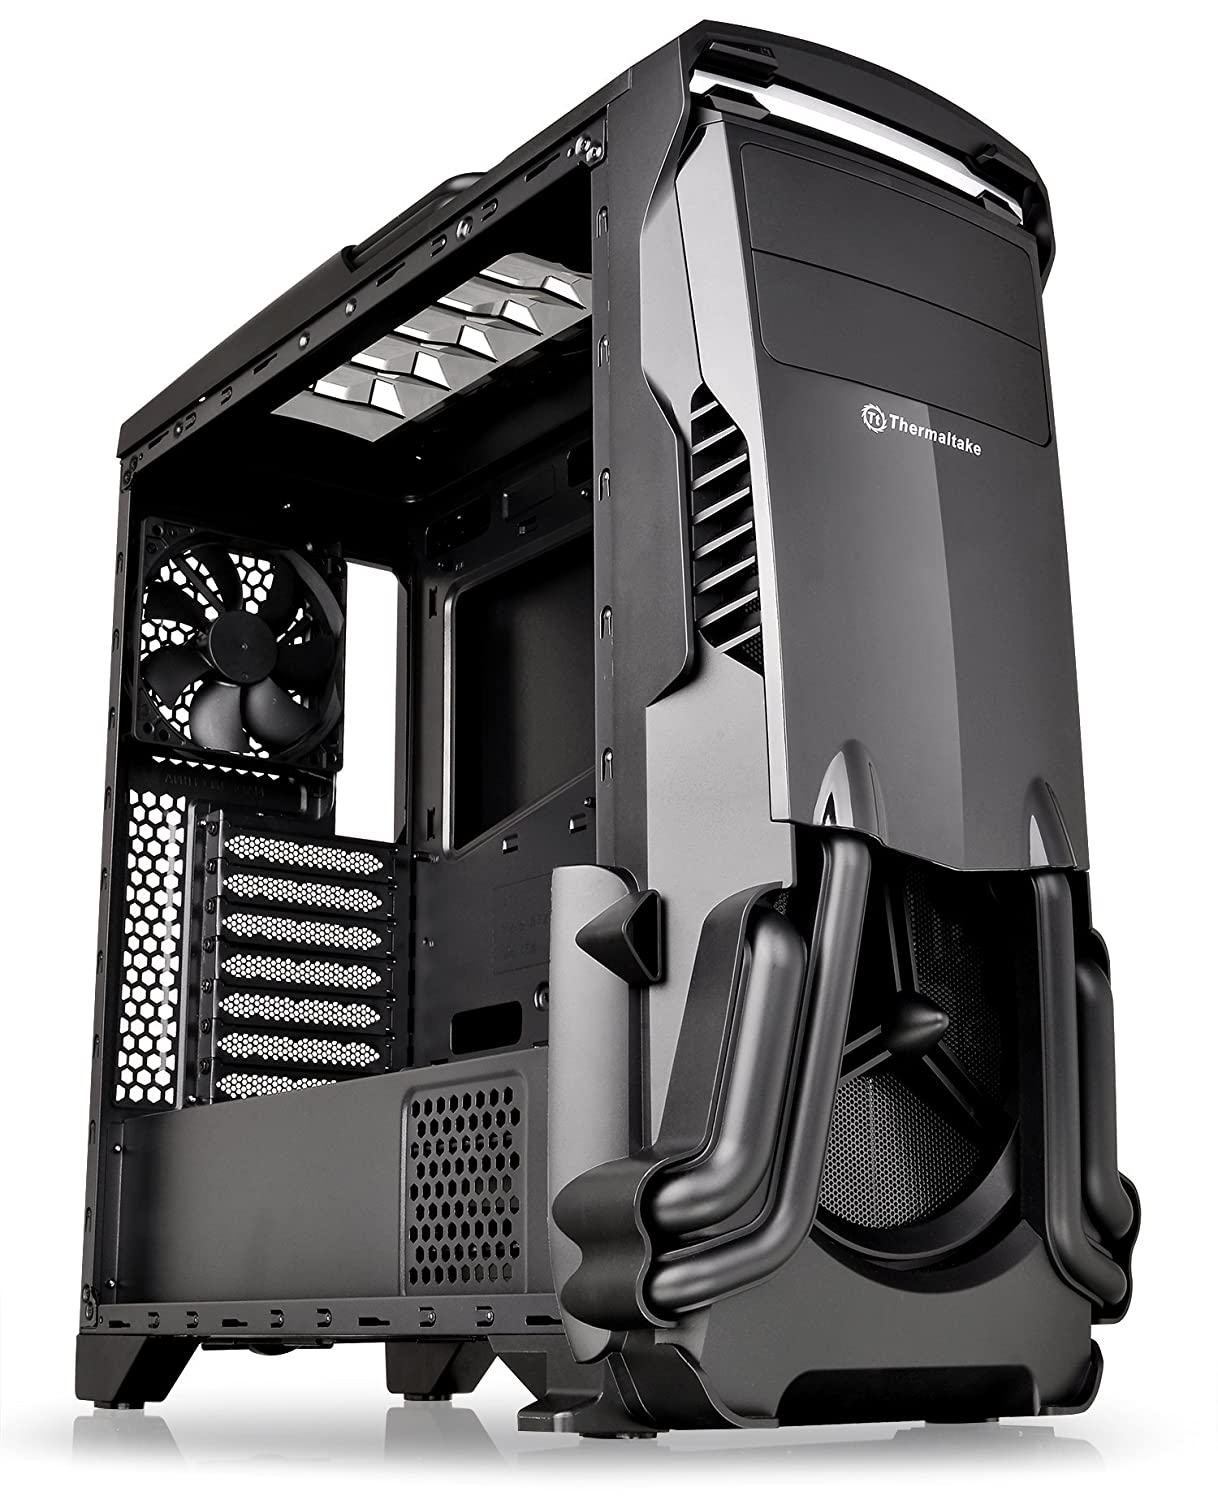 Thermaltake Versa N24 Black ATX Mid Tower